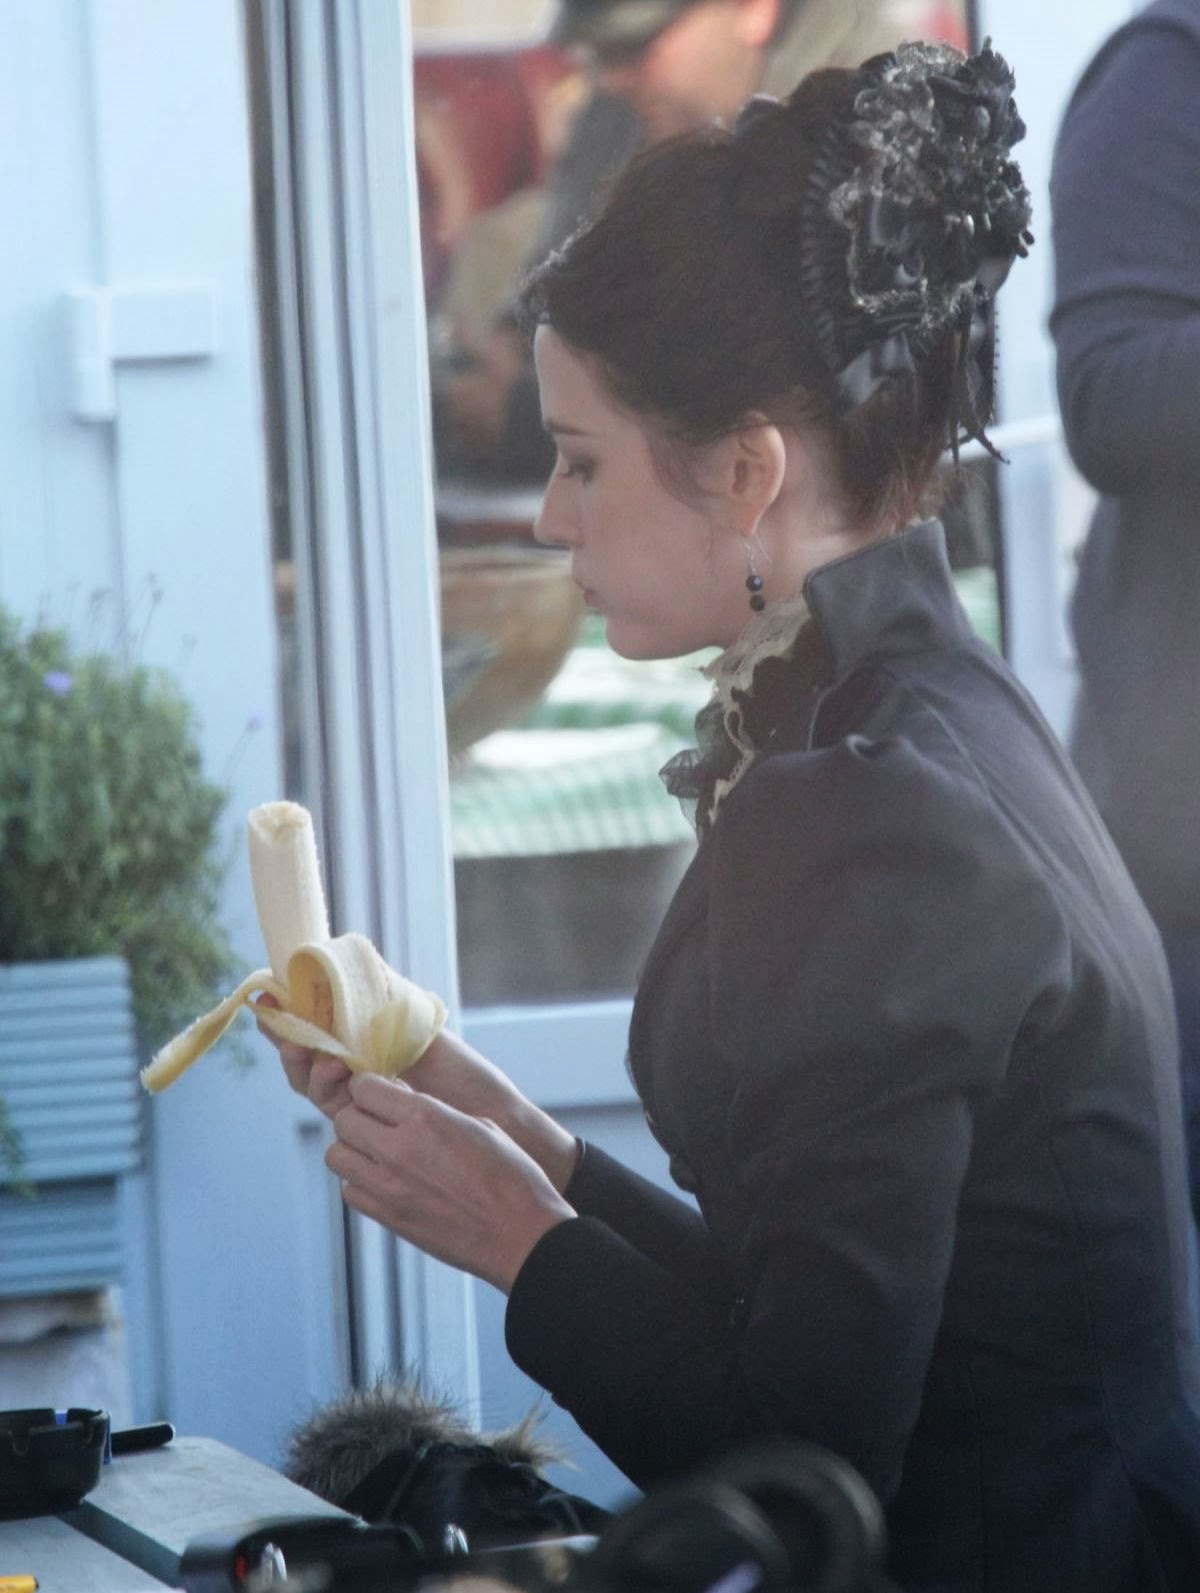 http://1.bp.blogspot.com/-zVOgwj4S6K8/Ut2KZQuxV9I/AAAAAAAAQhU/4g1Abdh8C8c/s1600/eva-green-on-the-set-of-penny-dreadful-in-ireland_8.jpg